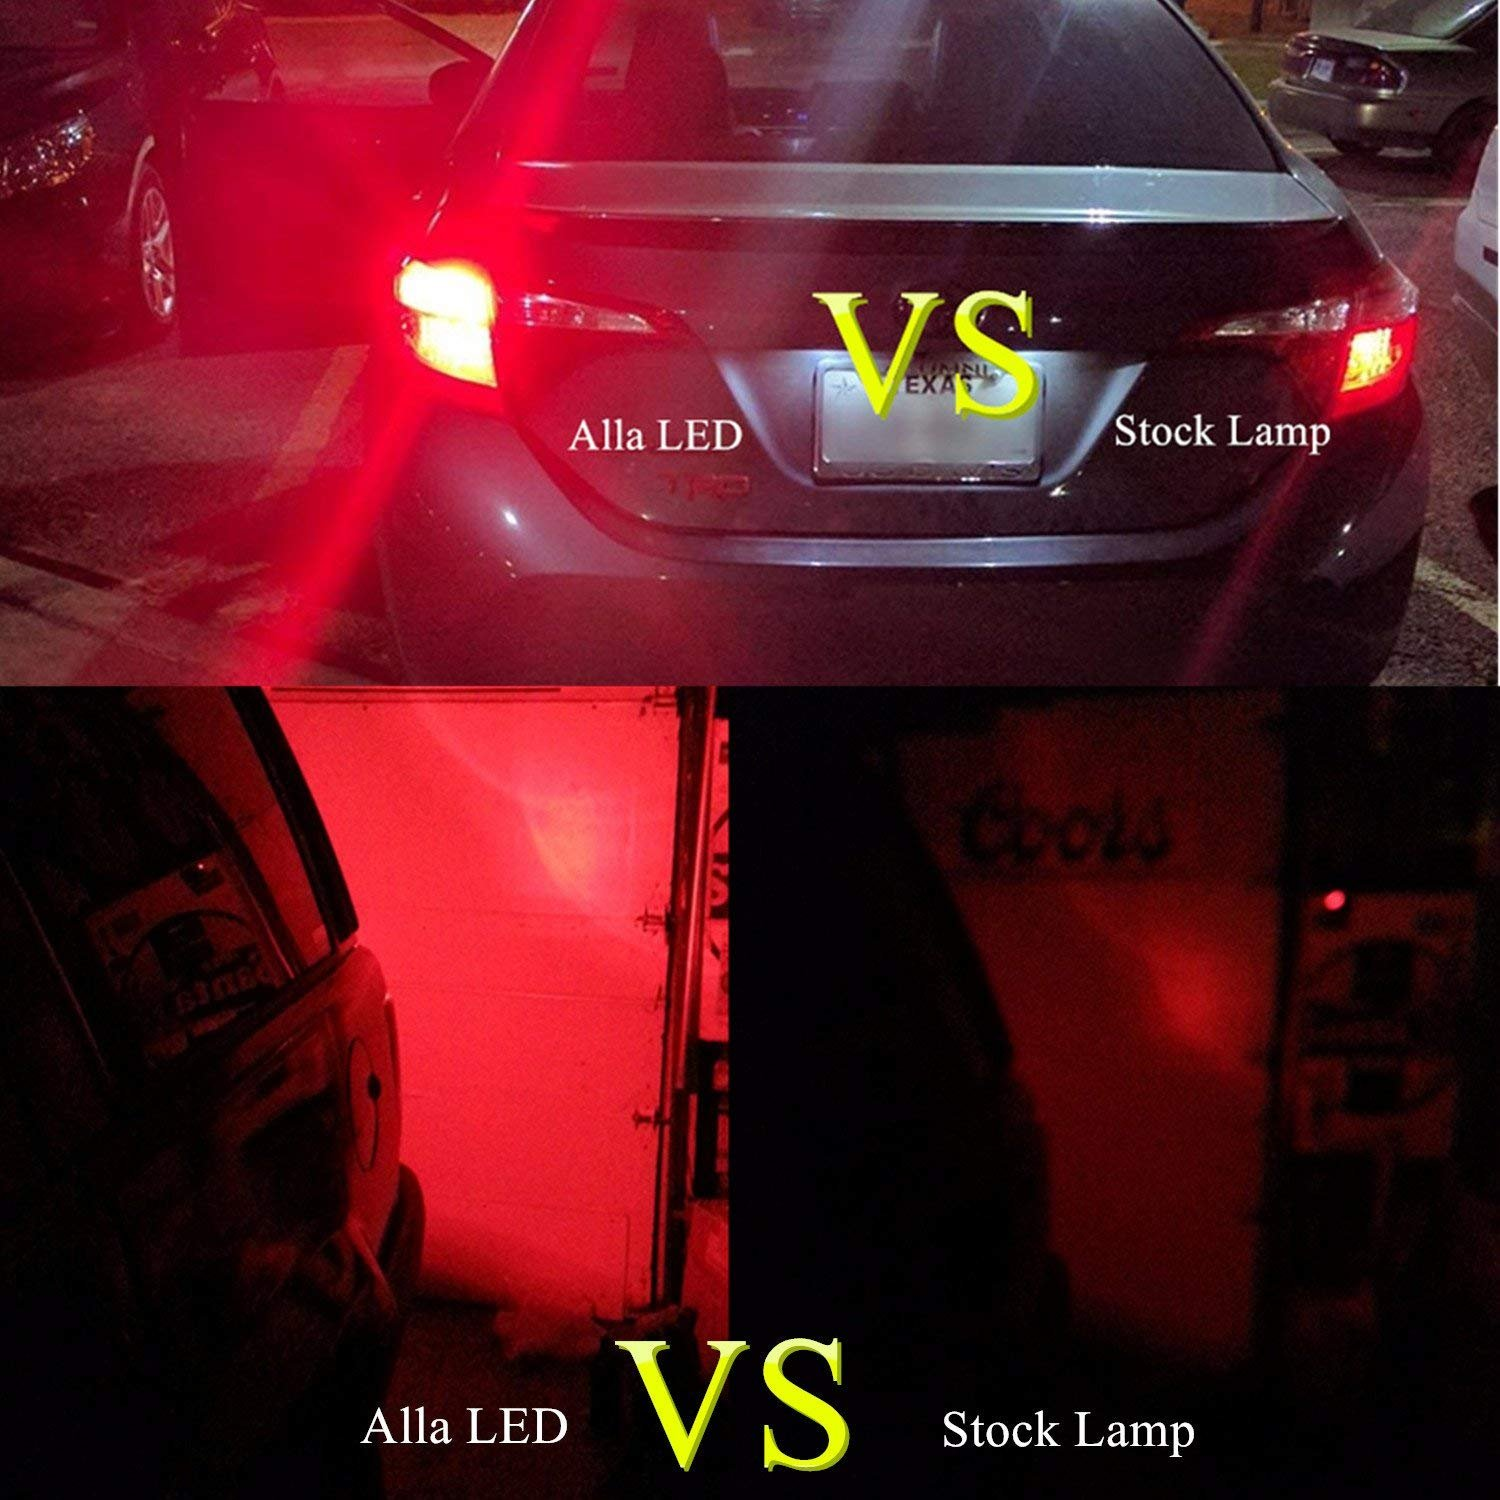 Alla Lighting 7440 7443 LED Strobe Brake Lights Bulbs Super Bright W21W T20  Wedge High Power 2835 SMD 12V Flashing Strobe Stop Lights Replacement for